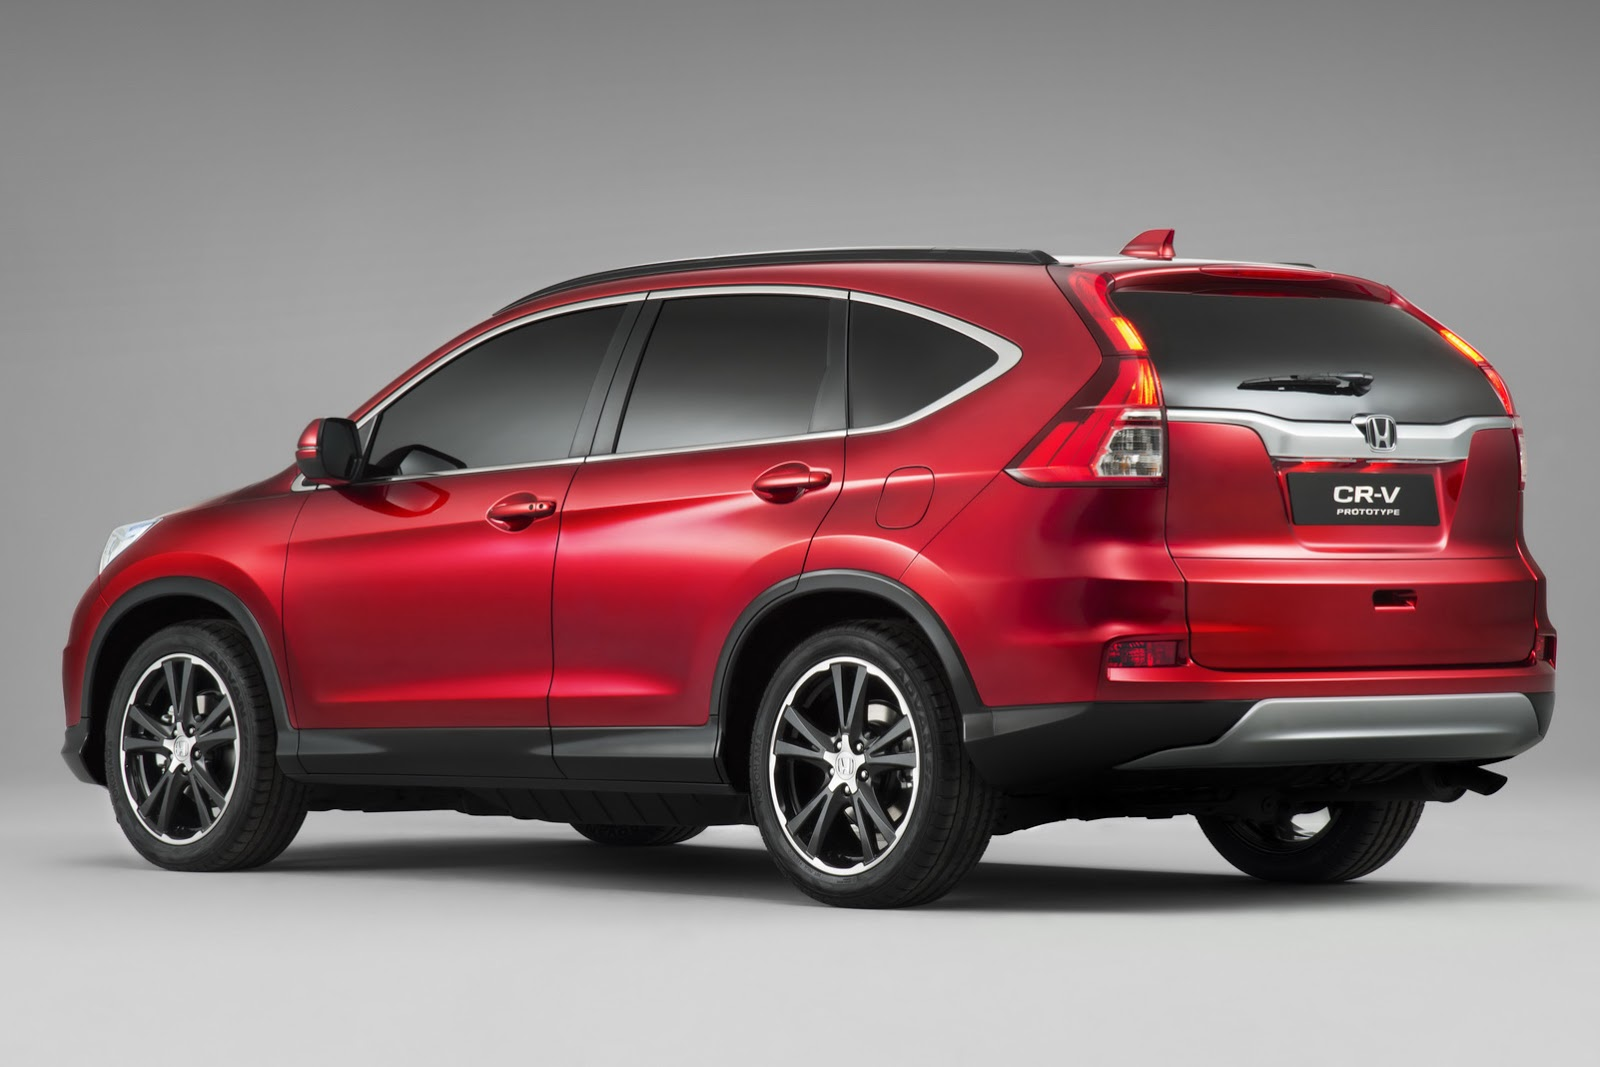 honda cr-v 2.0 new 2014 отзывы